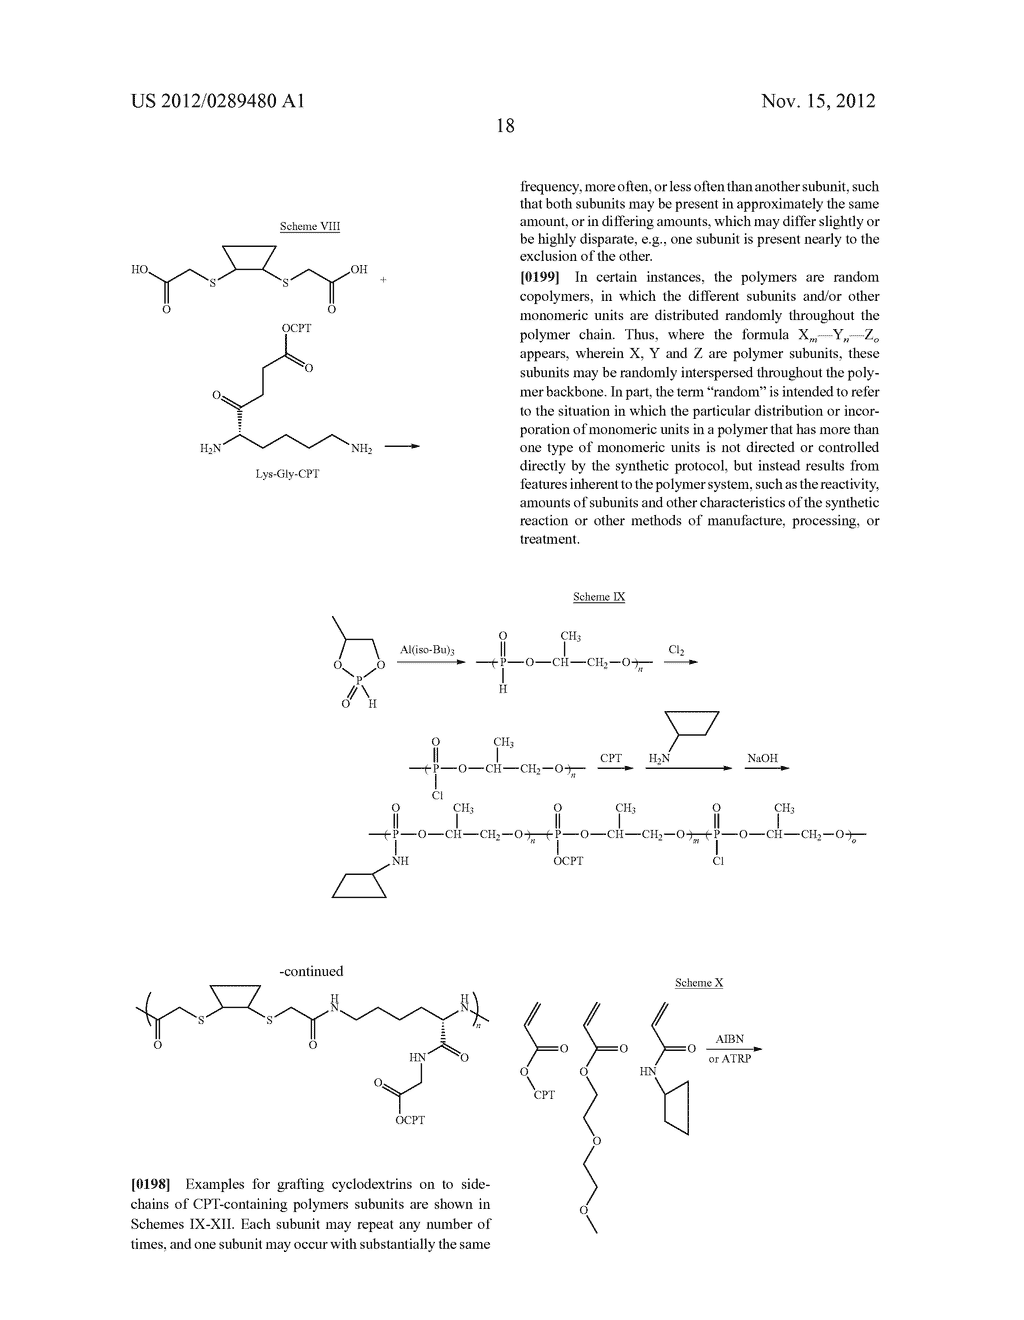 CYCLODEXTRIN-BASED POLYMERS FOR THERAPEUTICS DELIVERY - diagram, schematic, and image 30